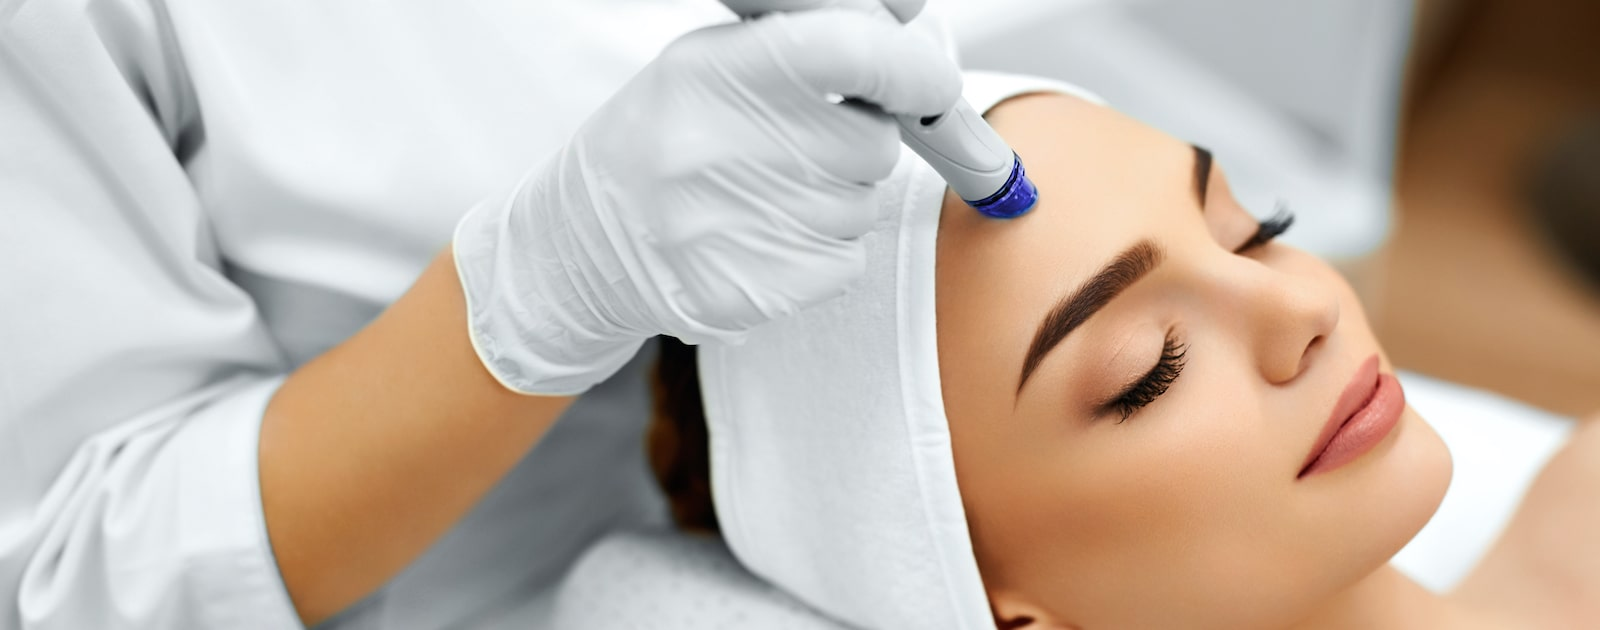 liverpool Microdermabrasion treatment